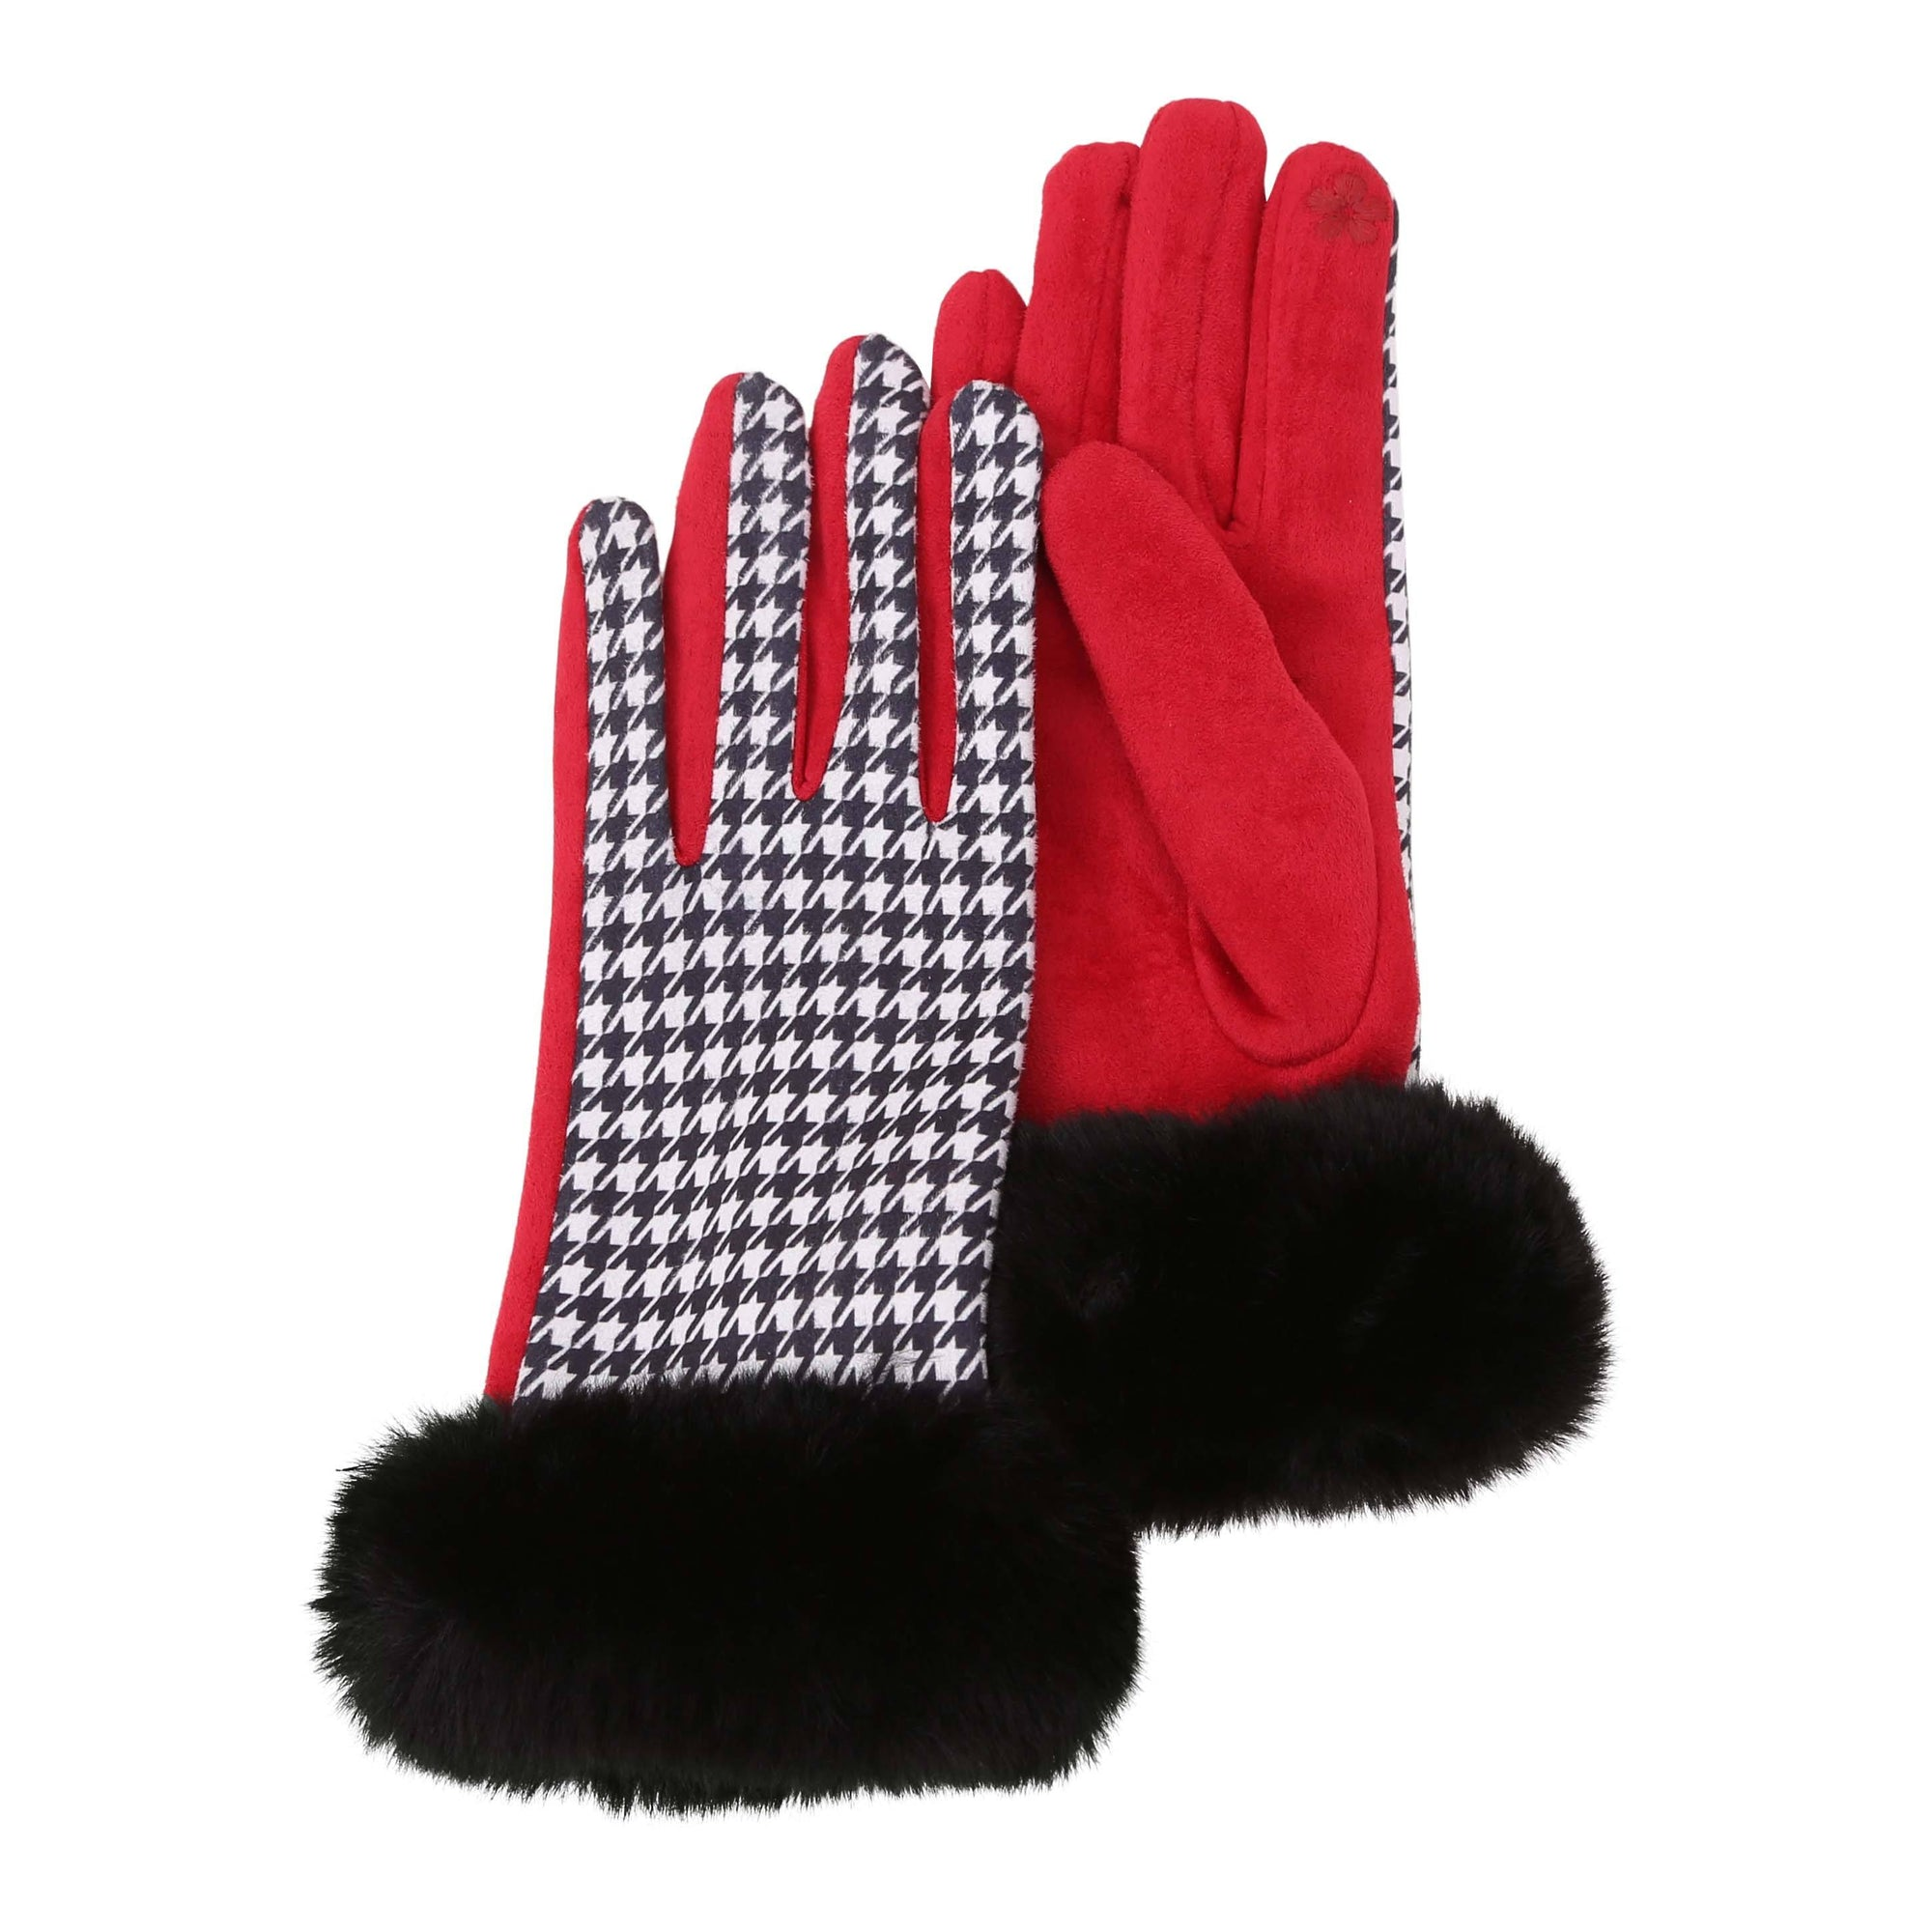 Pair of crimson, black and white houndstooth texting gloves with black fake fur cuffs.